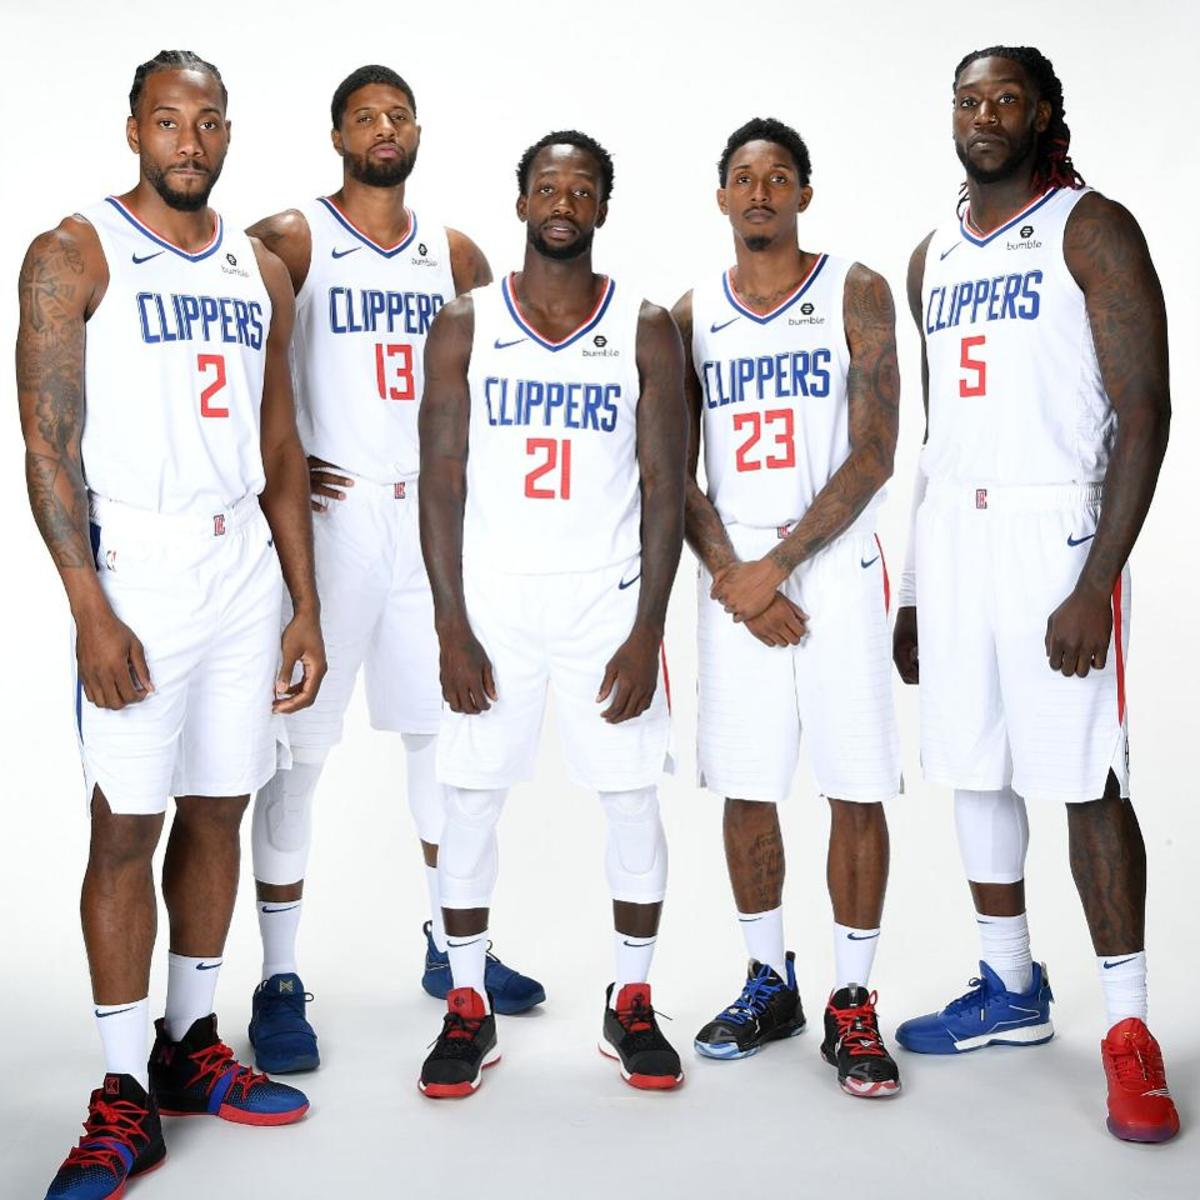 With the crazy offseason move made this past summer the Clippers are instant title contenders.